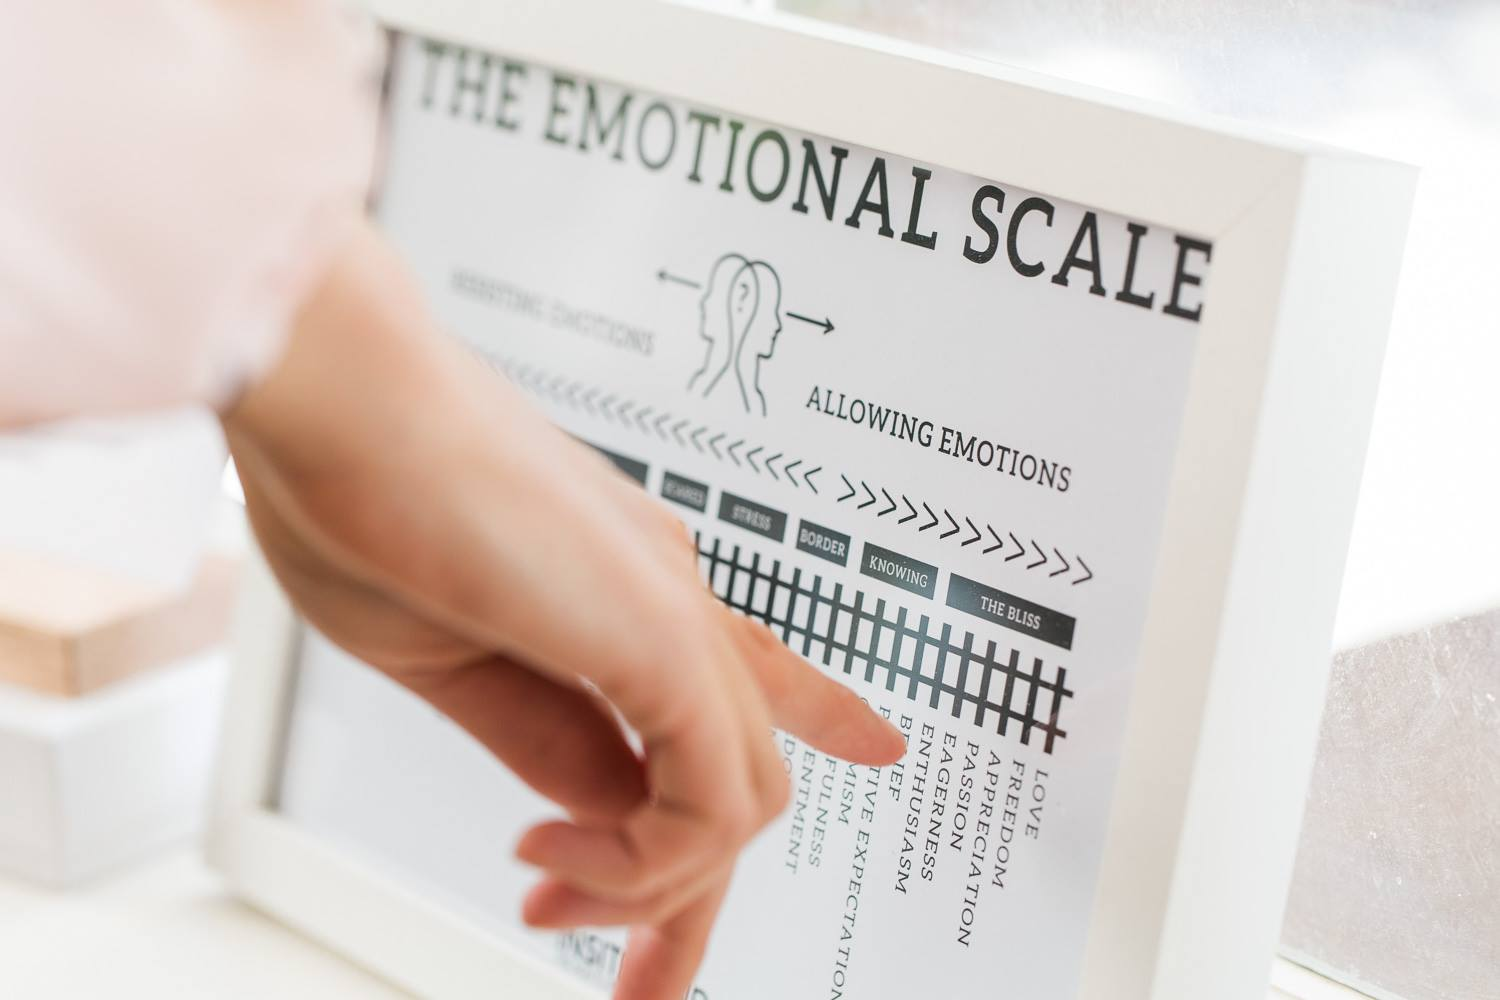 The emotional scale.jpg